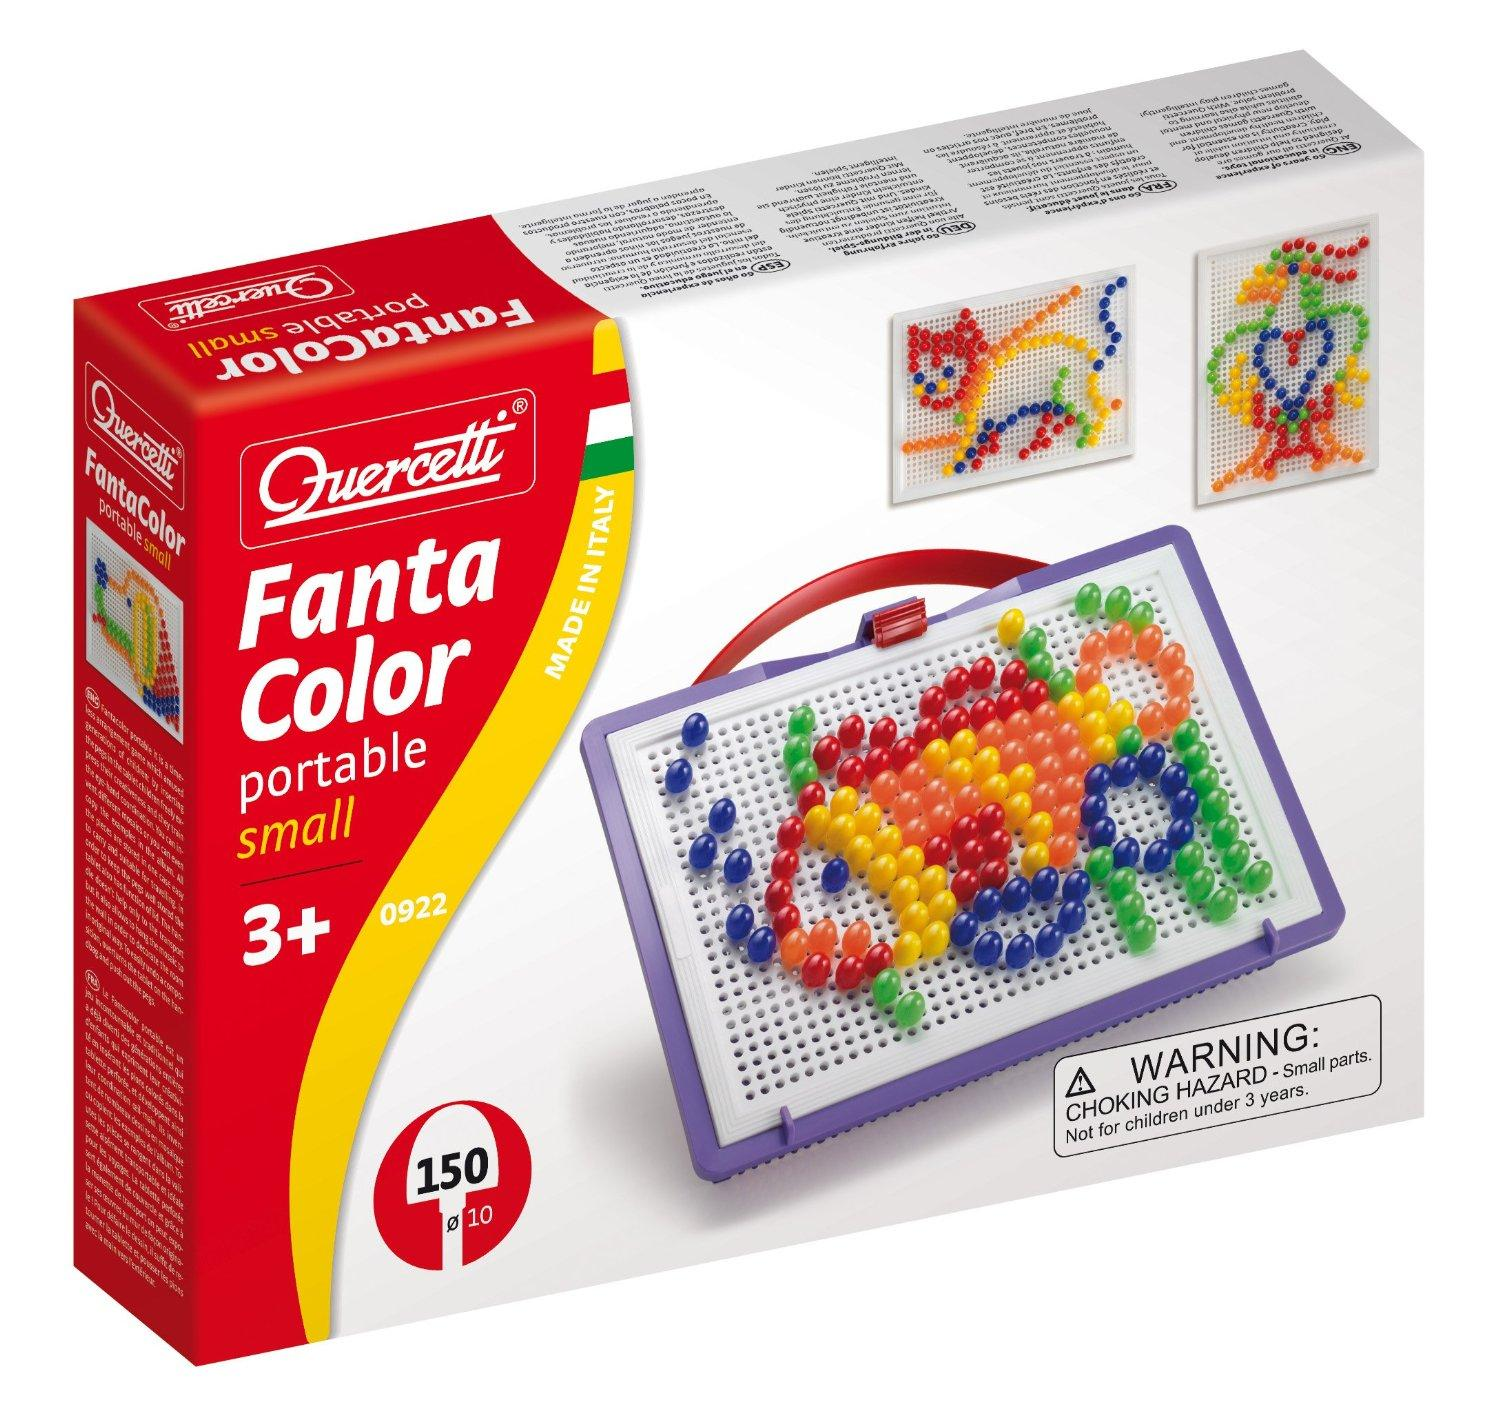 Fantacolor portable small 150τεμ